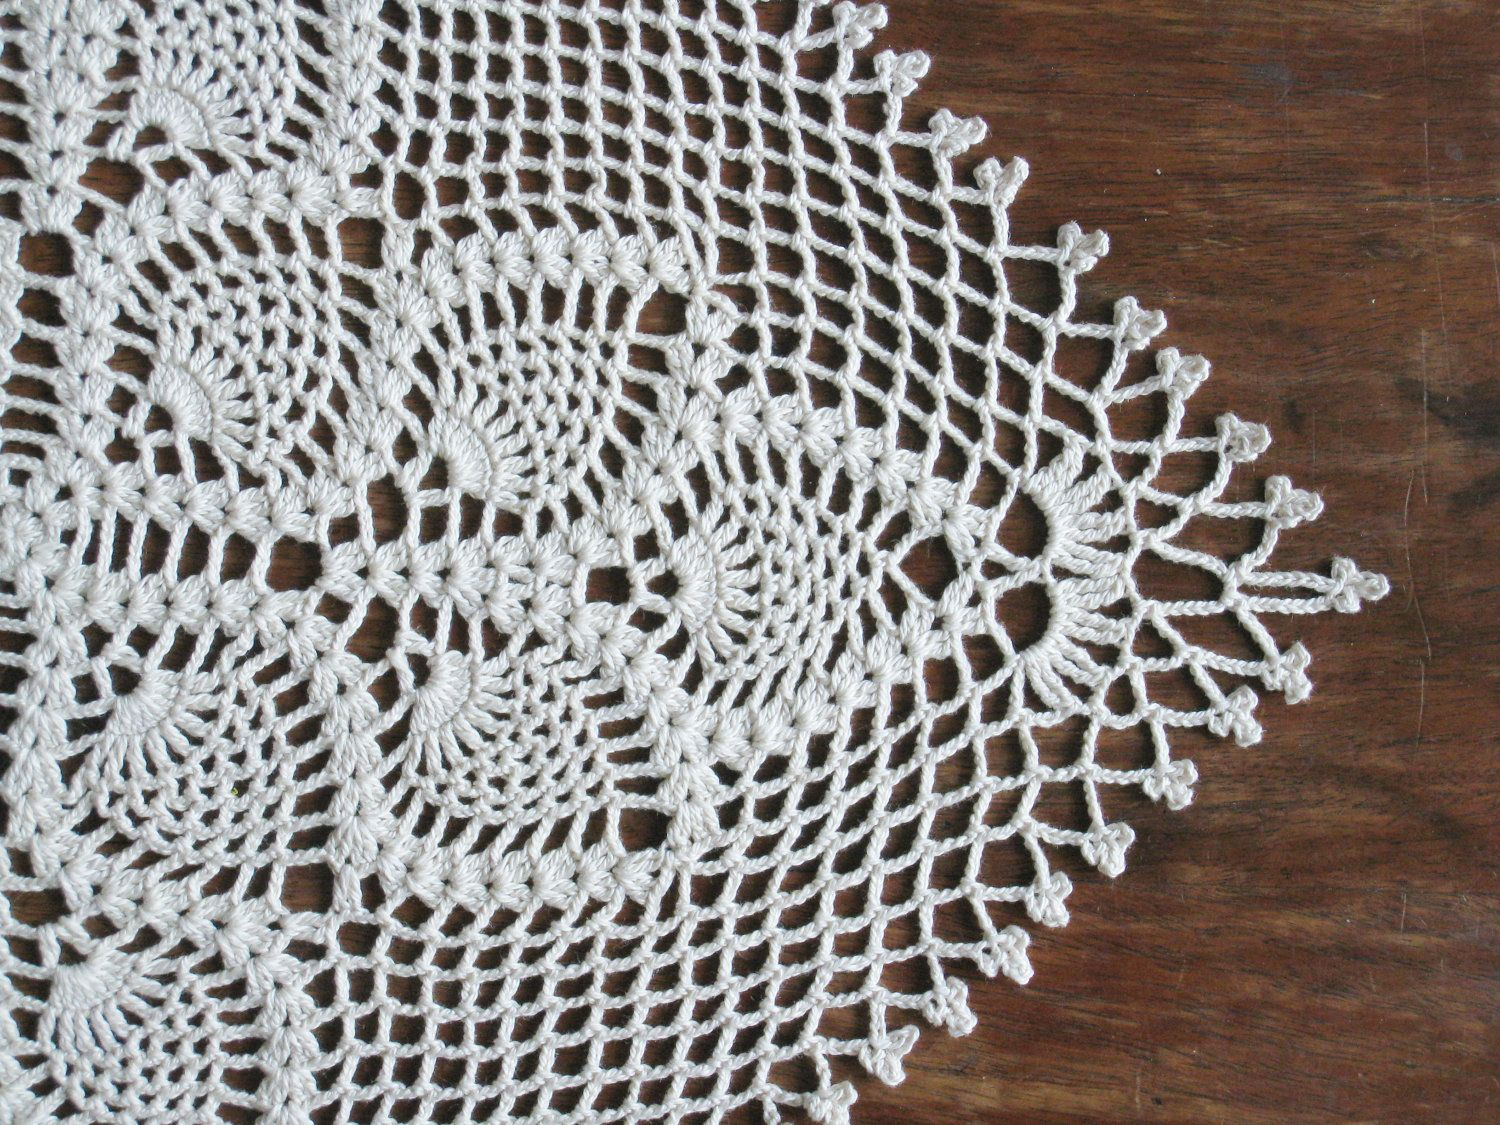 Pineapple crochet runner free pattern crochet square table pineapple crochet runner free pattern crochet square table runner lace table cloth natural shabby bankloansurffo Choice Image